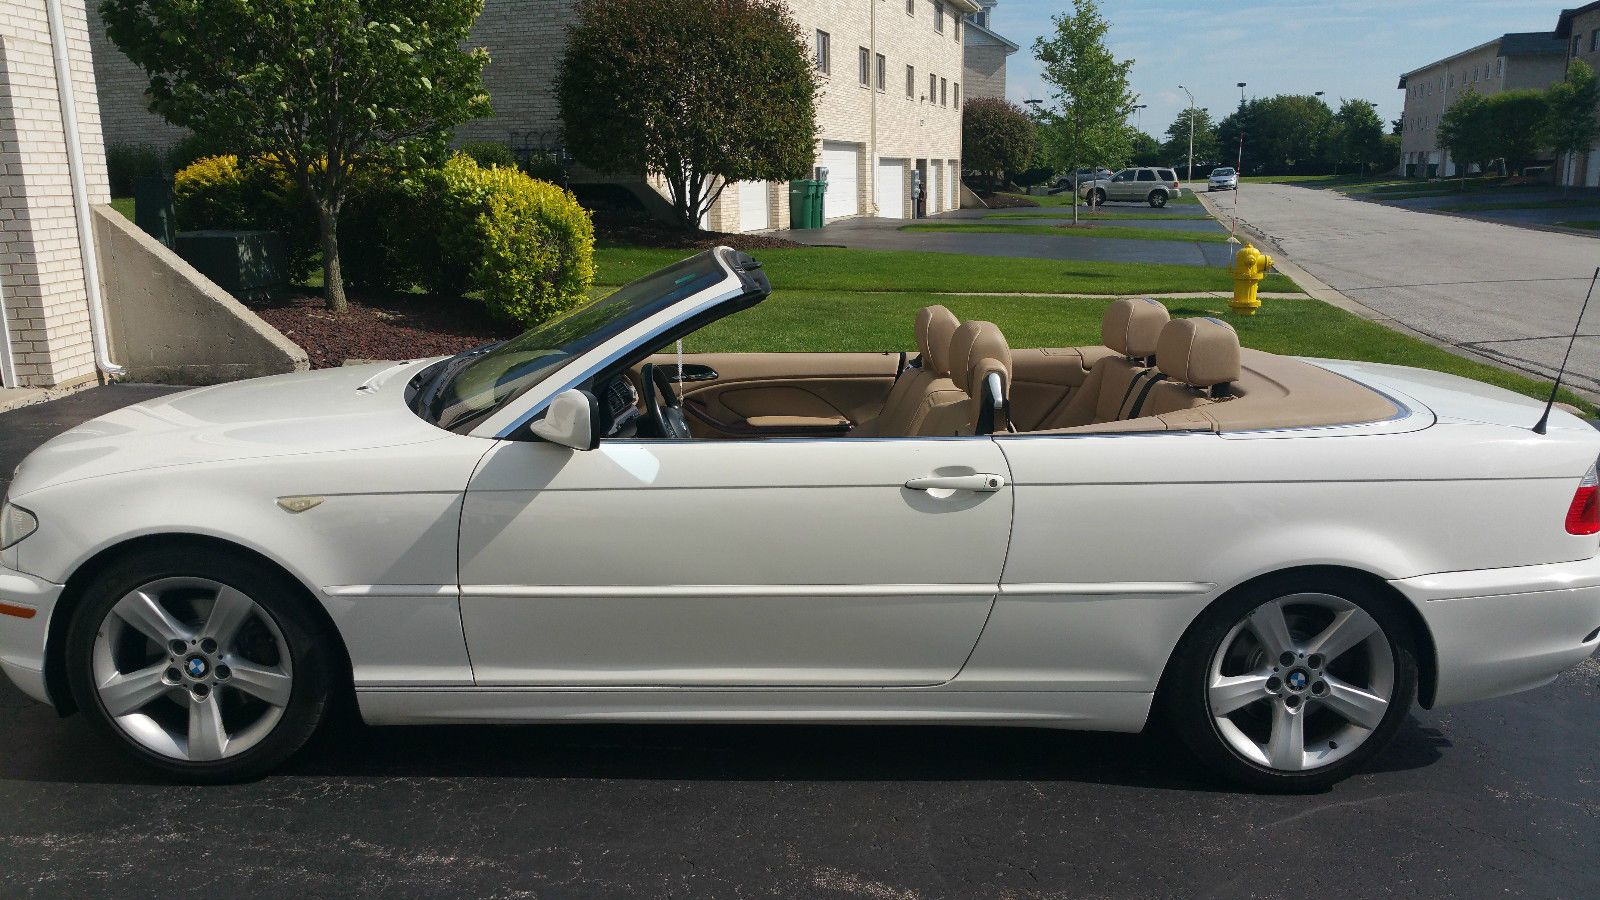 car brand auctioned bmw 3 series 325ci convertible 2005 car model bmw 325 ci convertible white. Black Bedroom Furniture Sets. Home Design Ideas